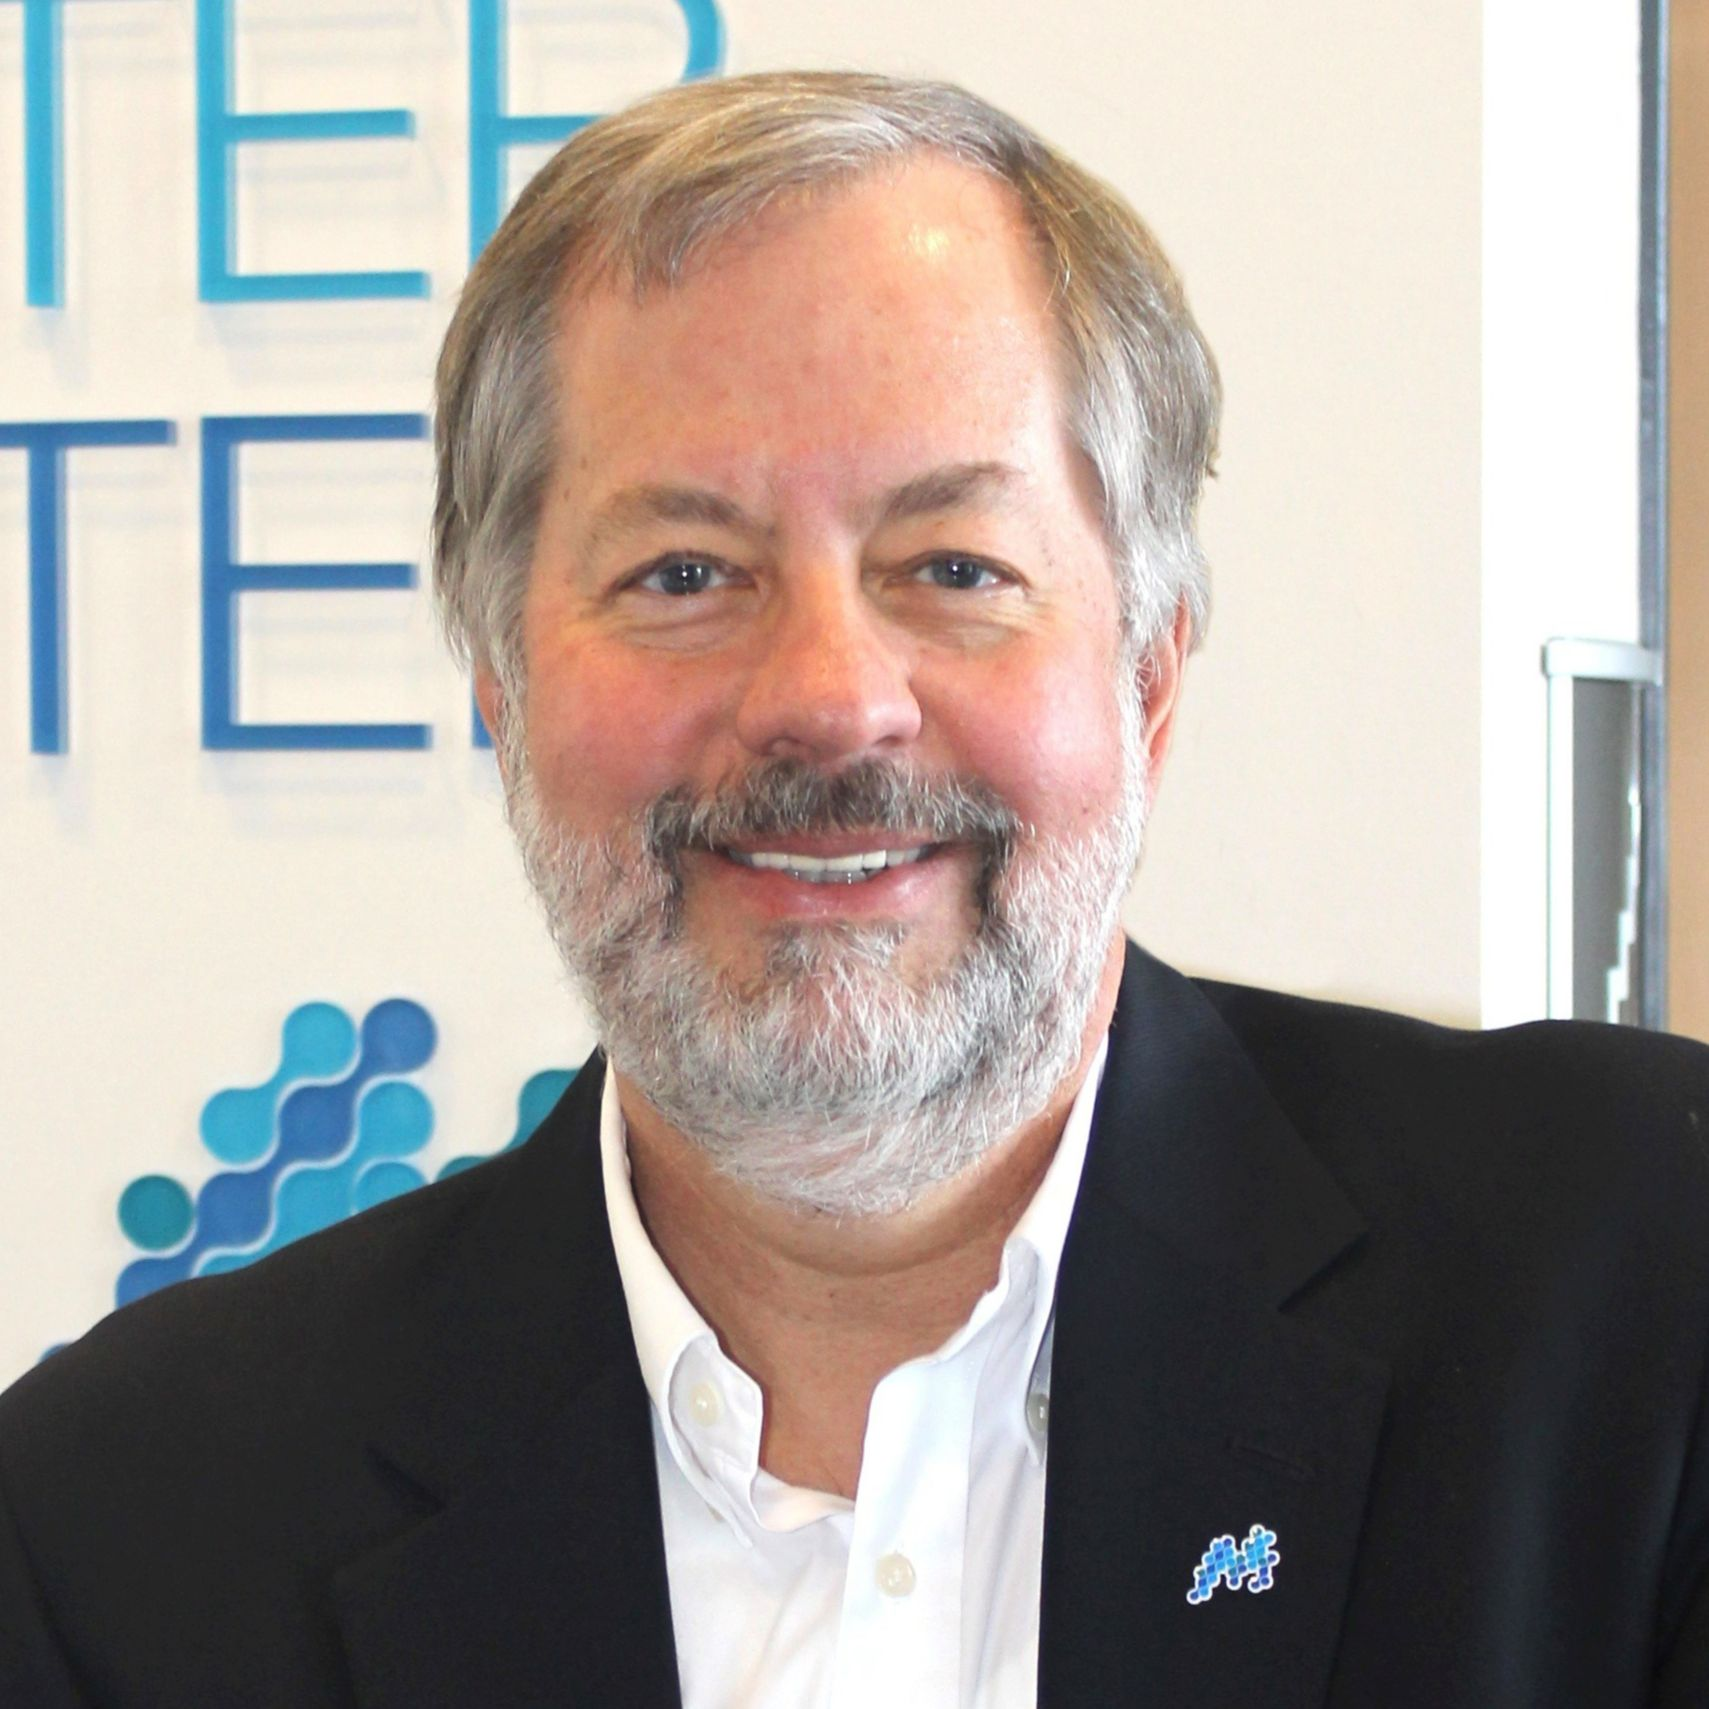 Dean Amhaus, president & CEO of The Water Council